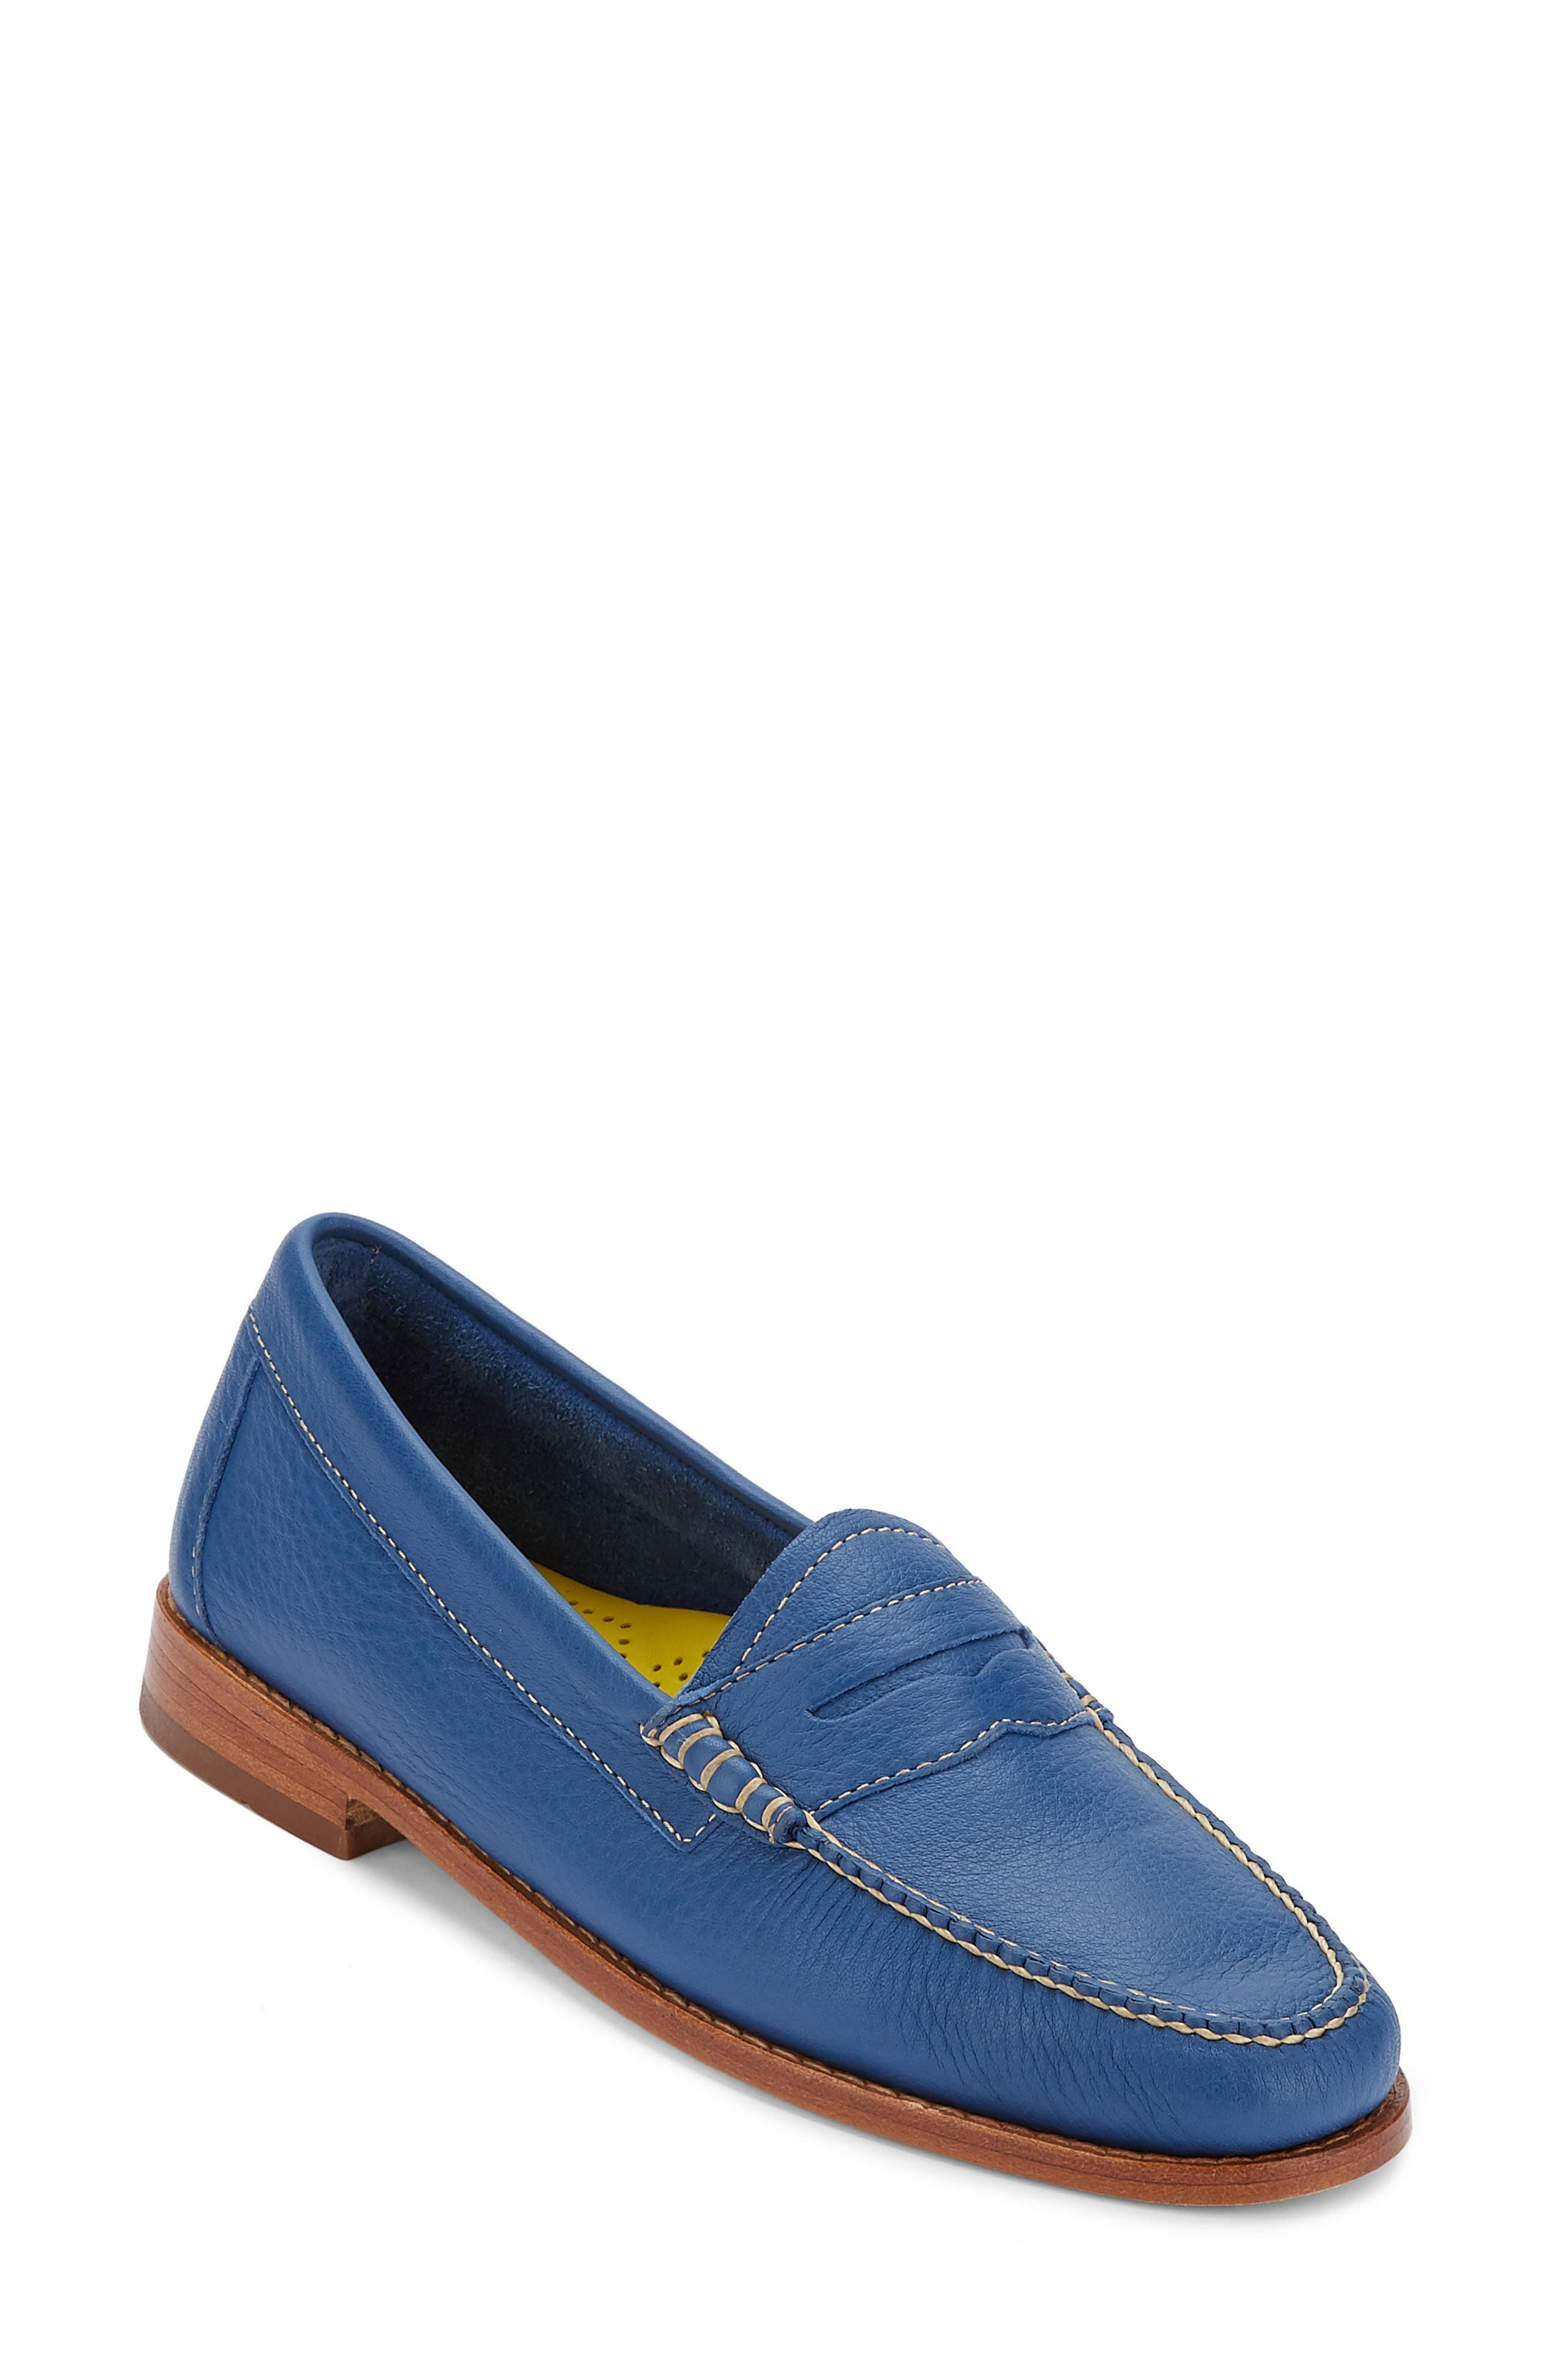 'Whitney' Loafer,                             Main thumbnail 33, color,